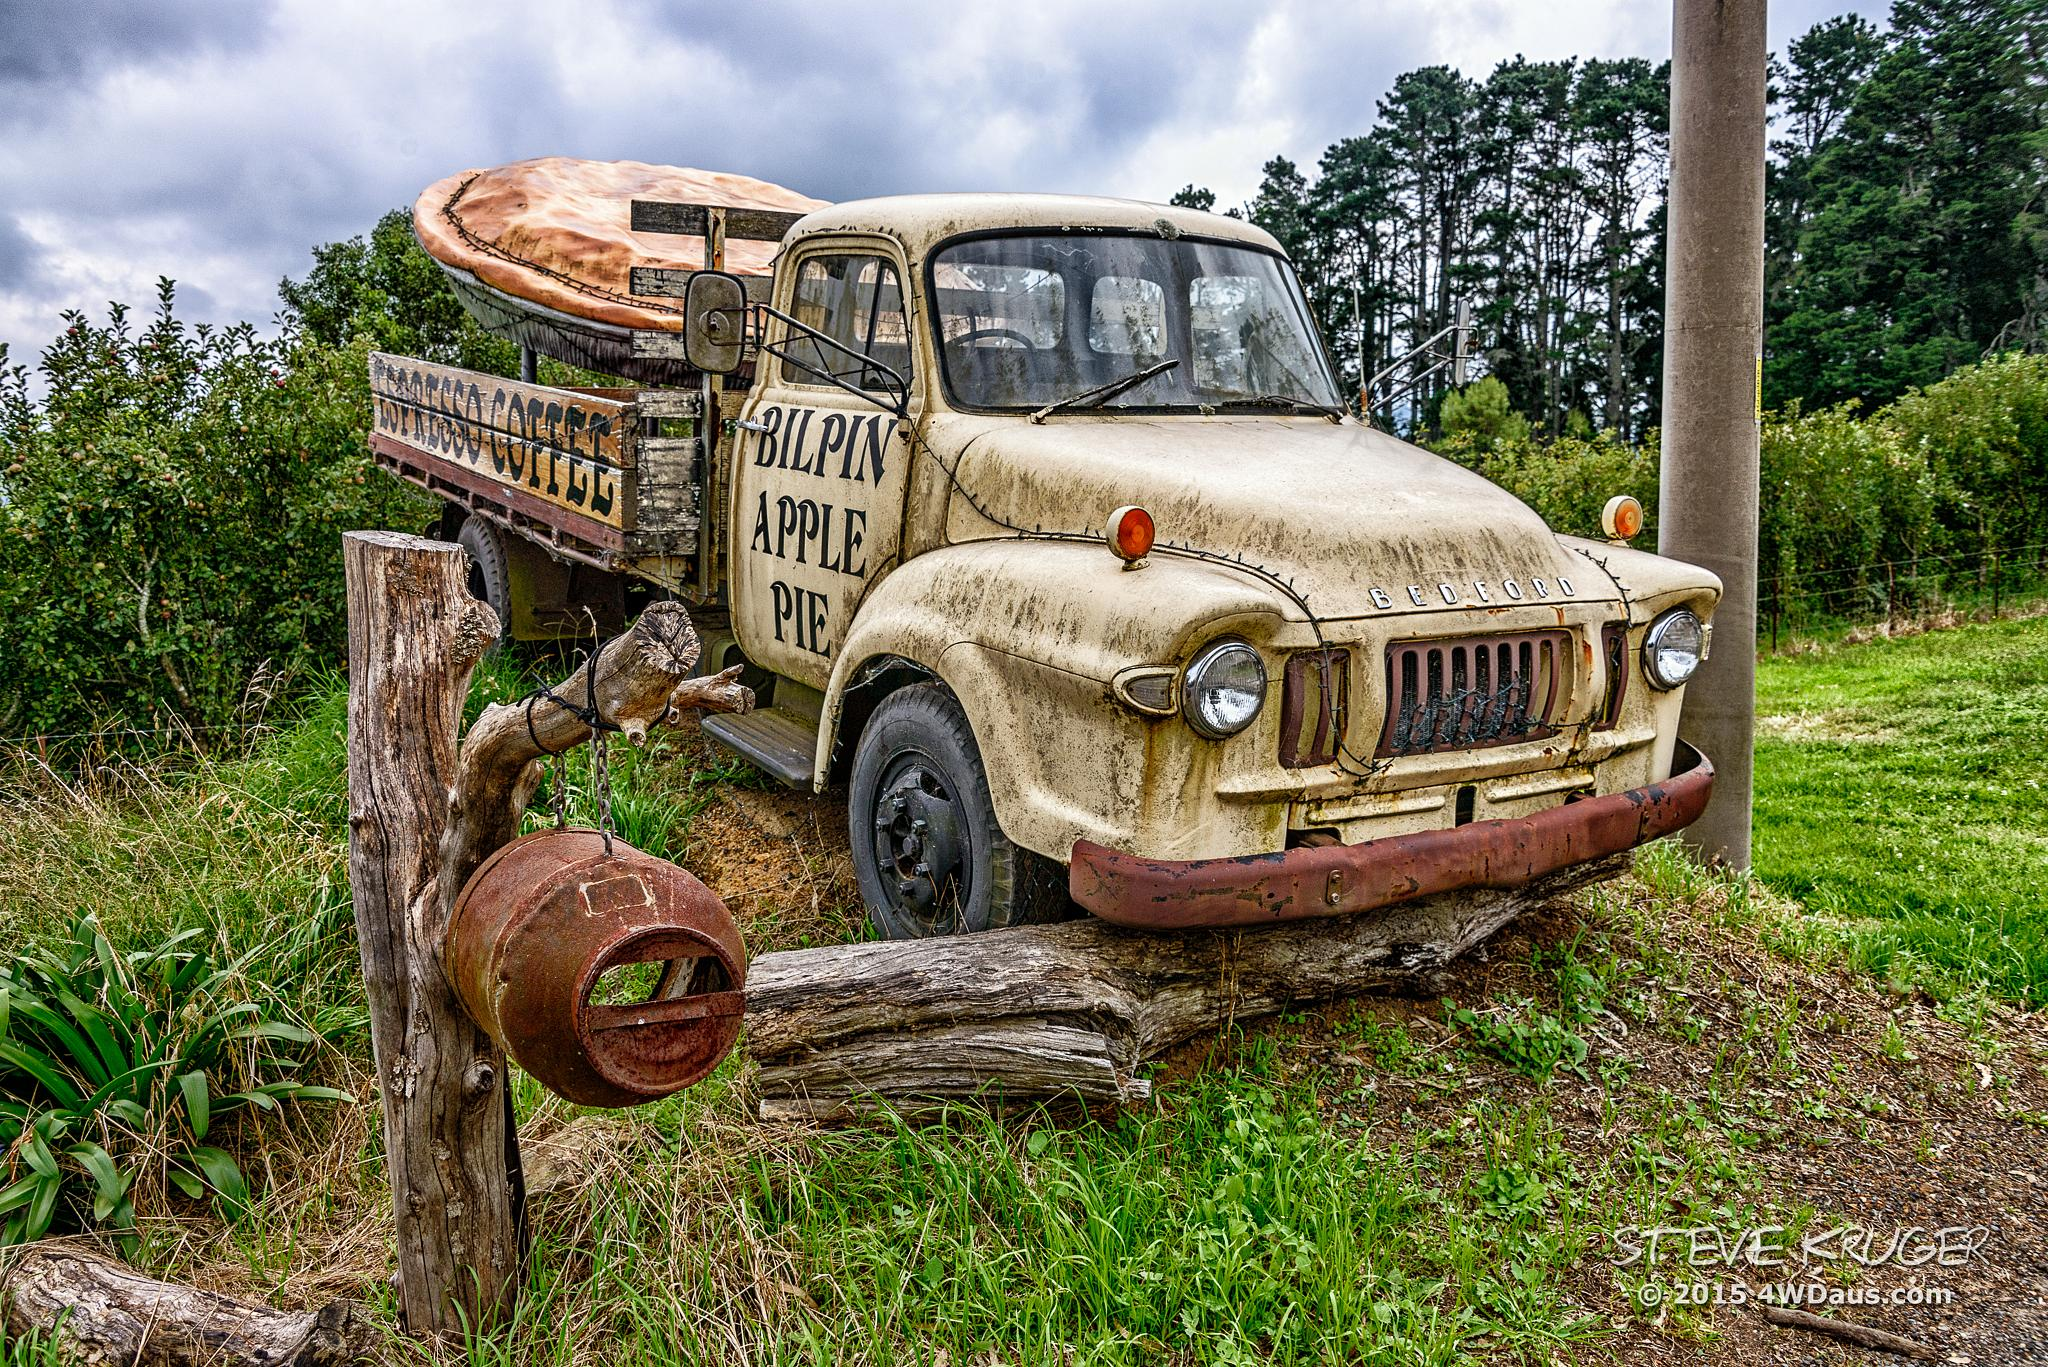 Bedford Truck - Bilpin Apple Pie Truck by Steve Kruger